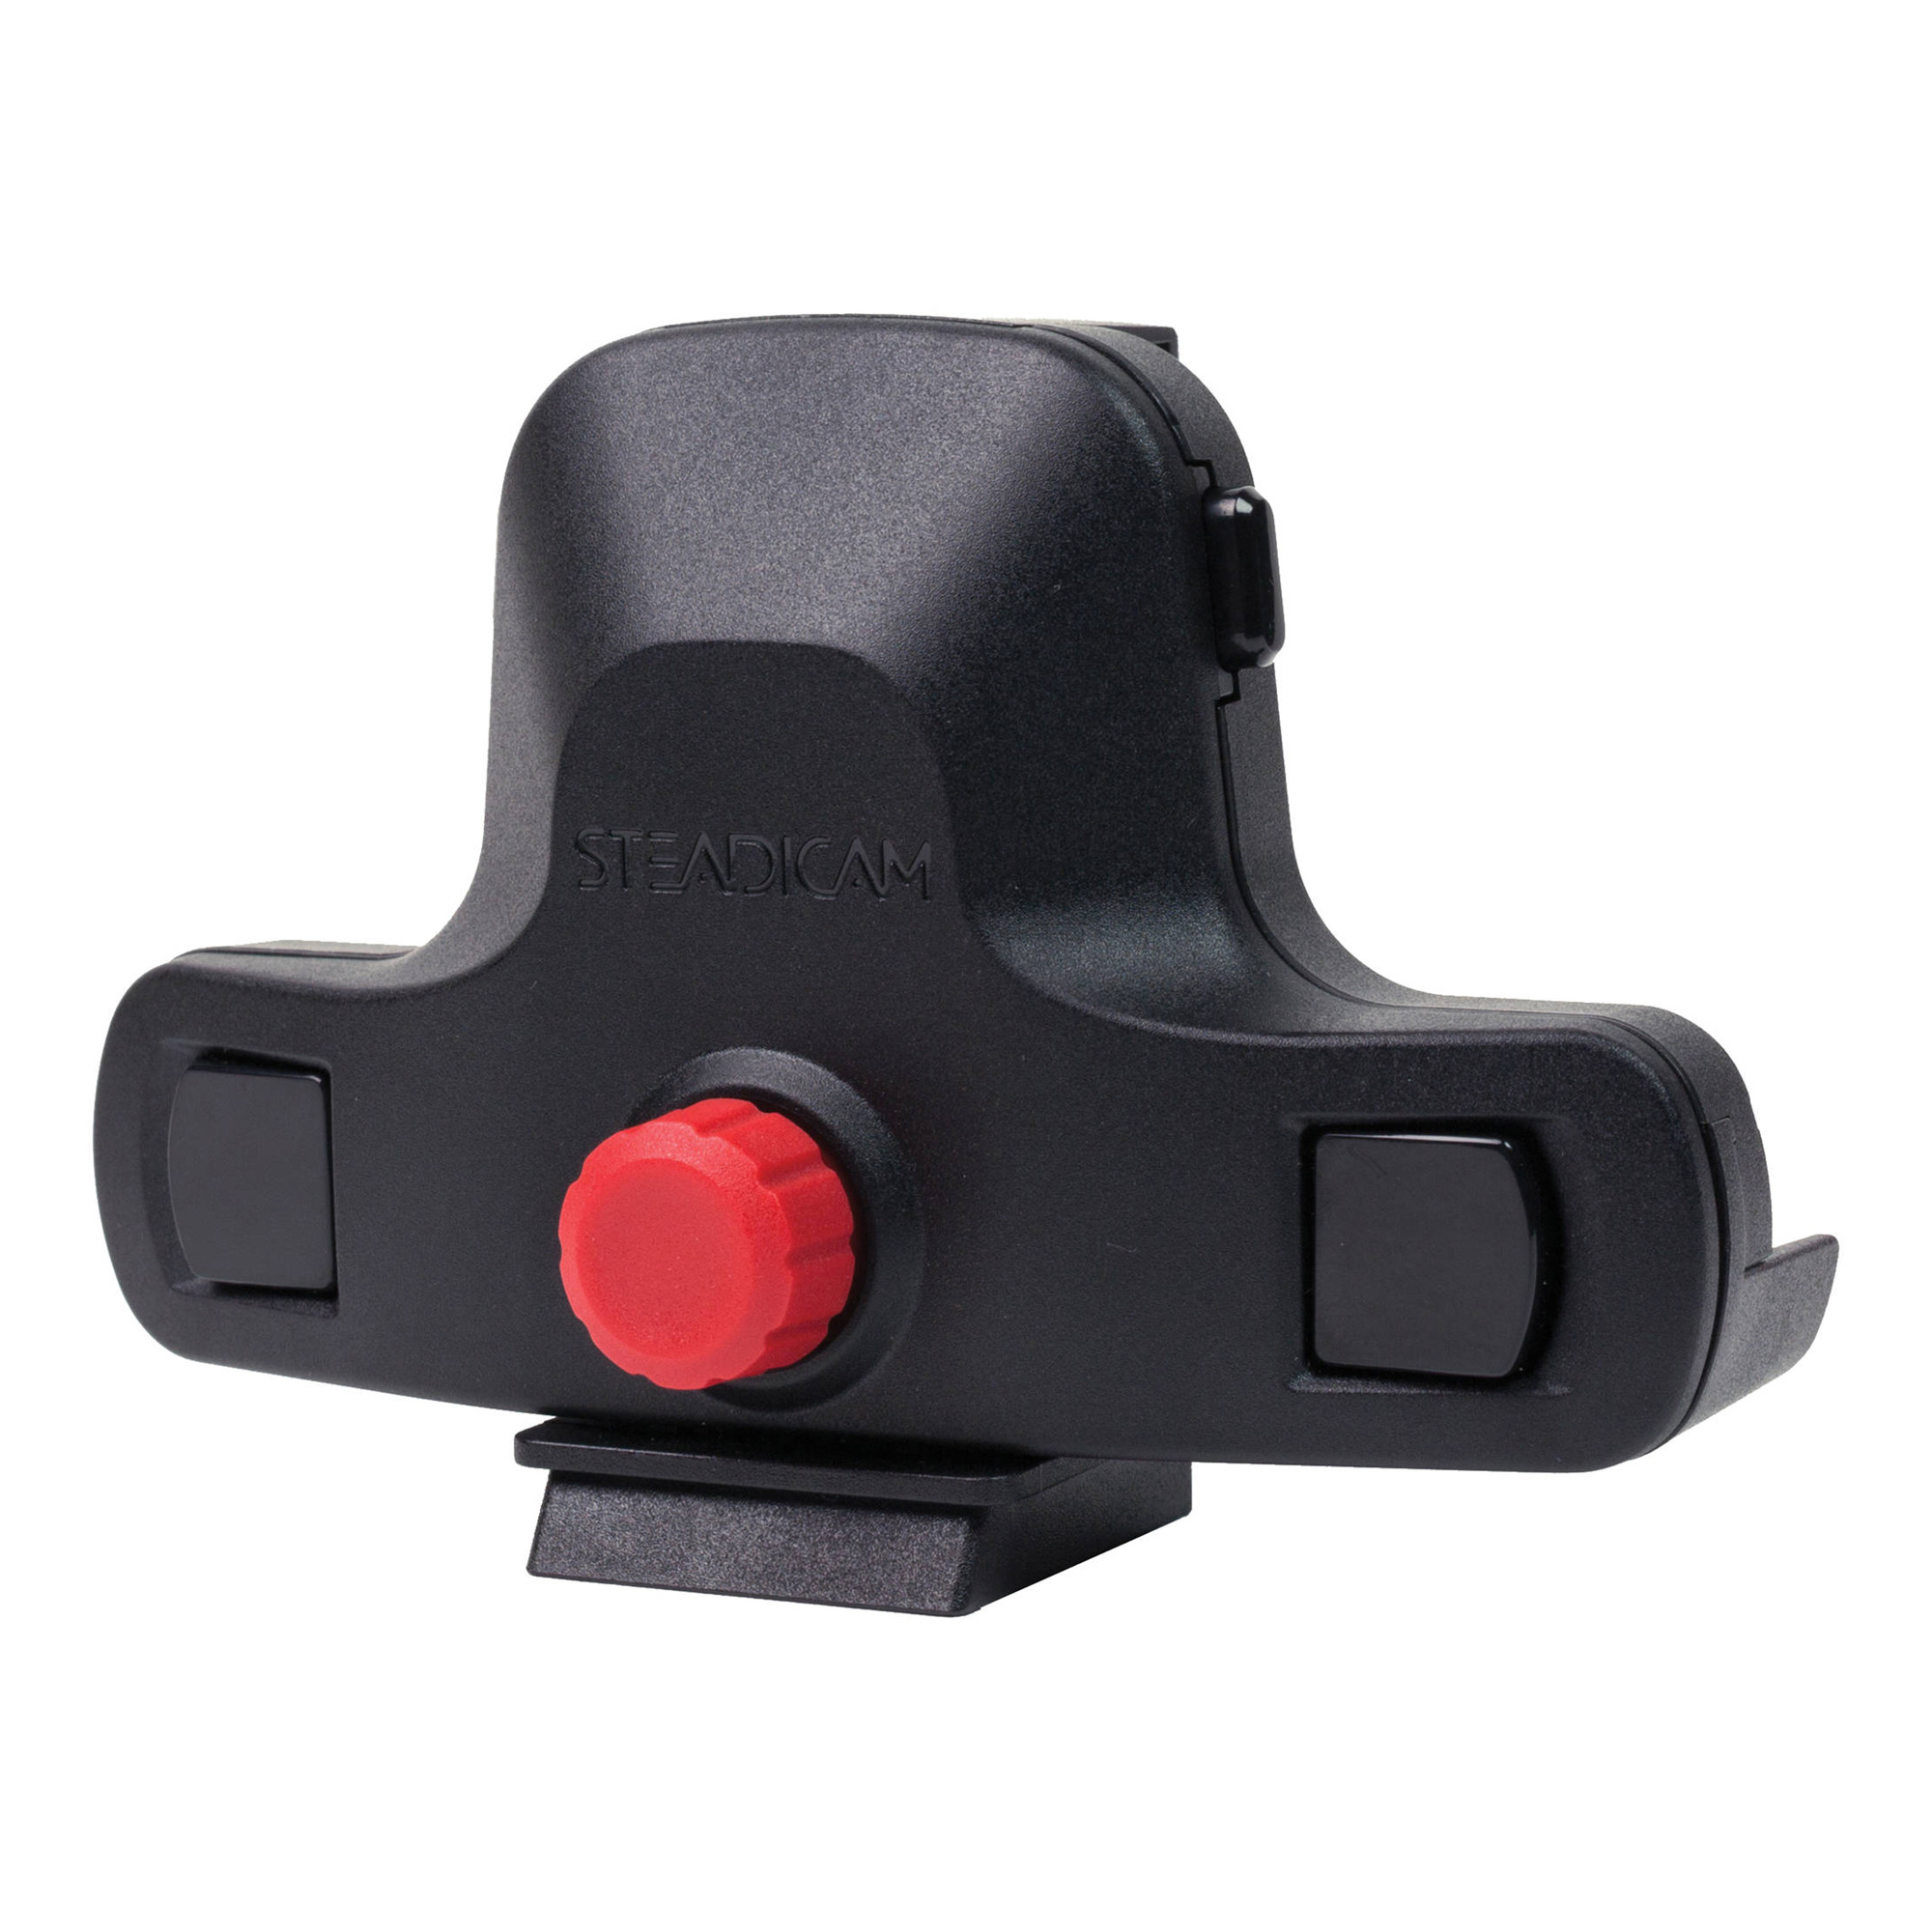 Universal Smartphone Mount for Steadicam Smoothee - Electronic Artx